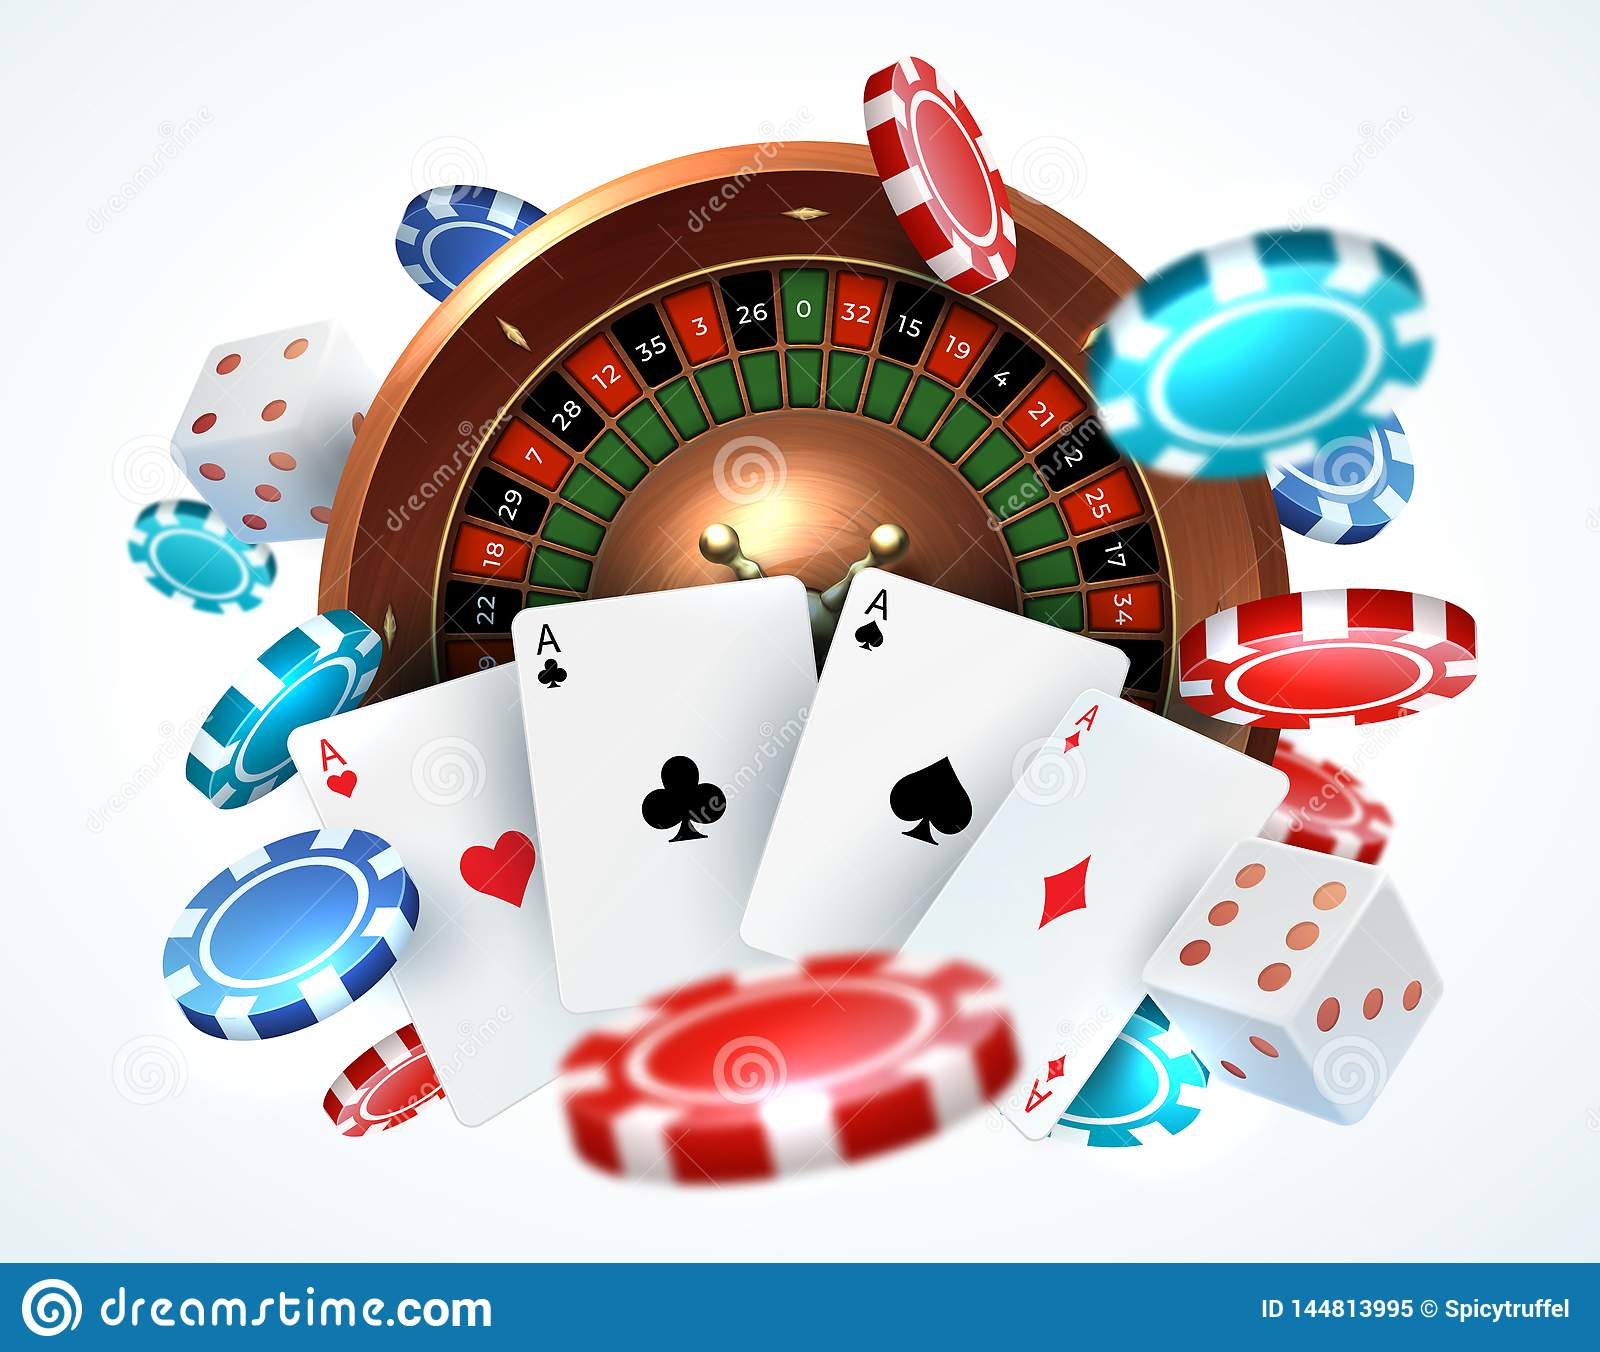 Playing Cards Poker Chips Falling Dice Online Casino Gambling Realistic 3d Gaming Concept With Vector Lucky Roulette Stock Vector Illustration Of Background Leisure 144813995